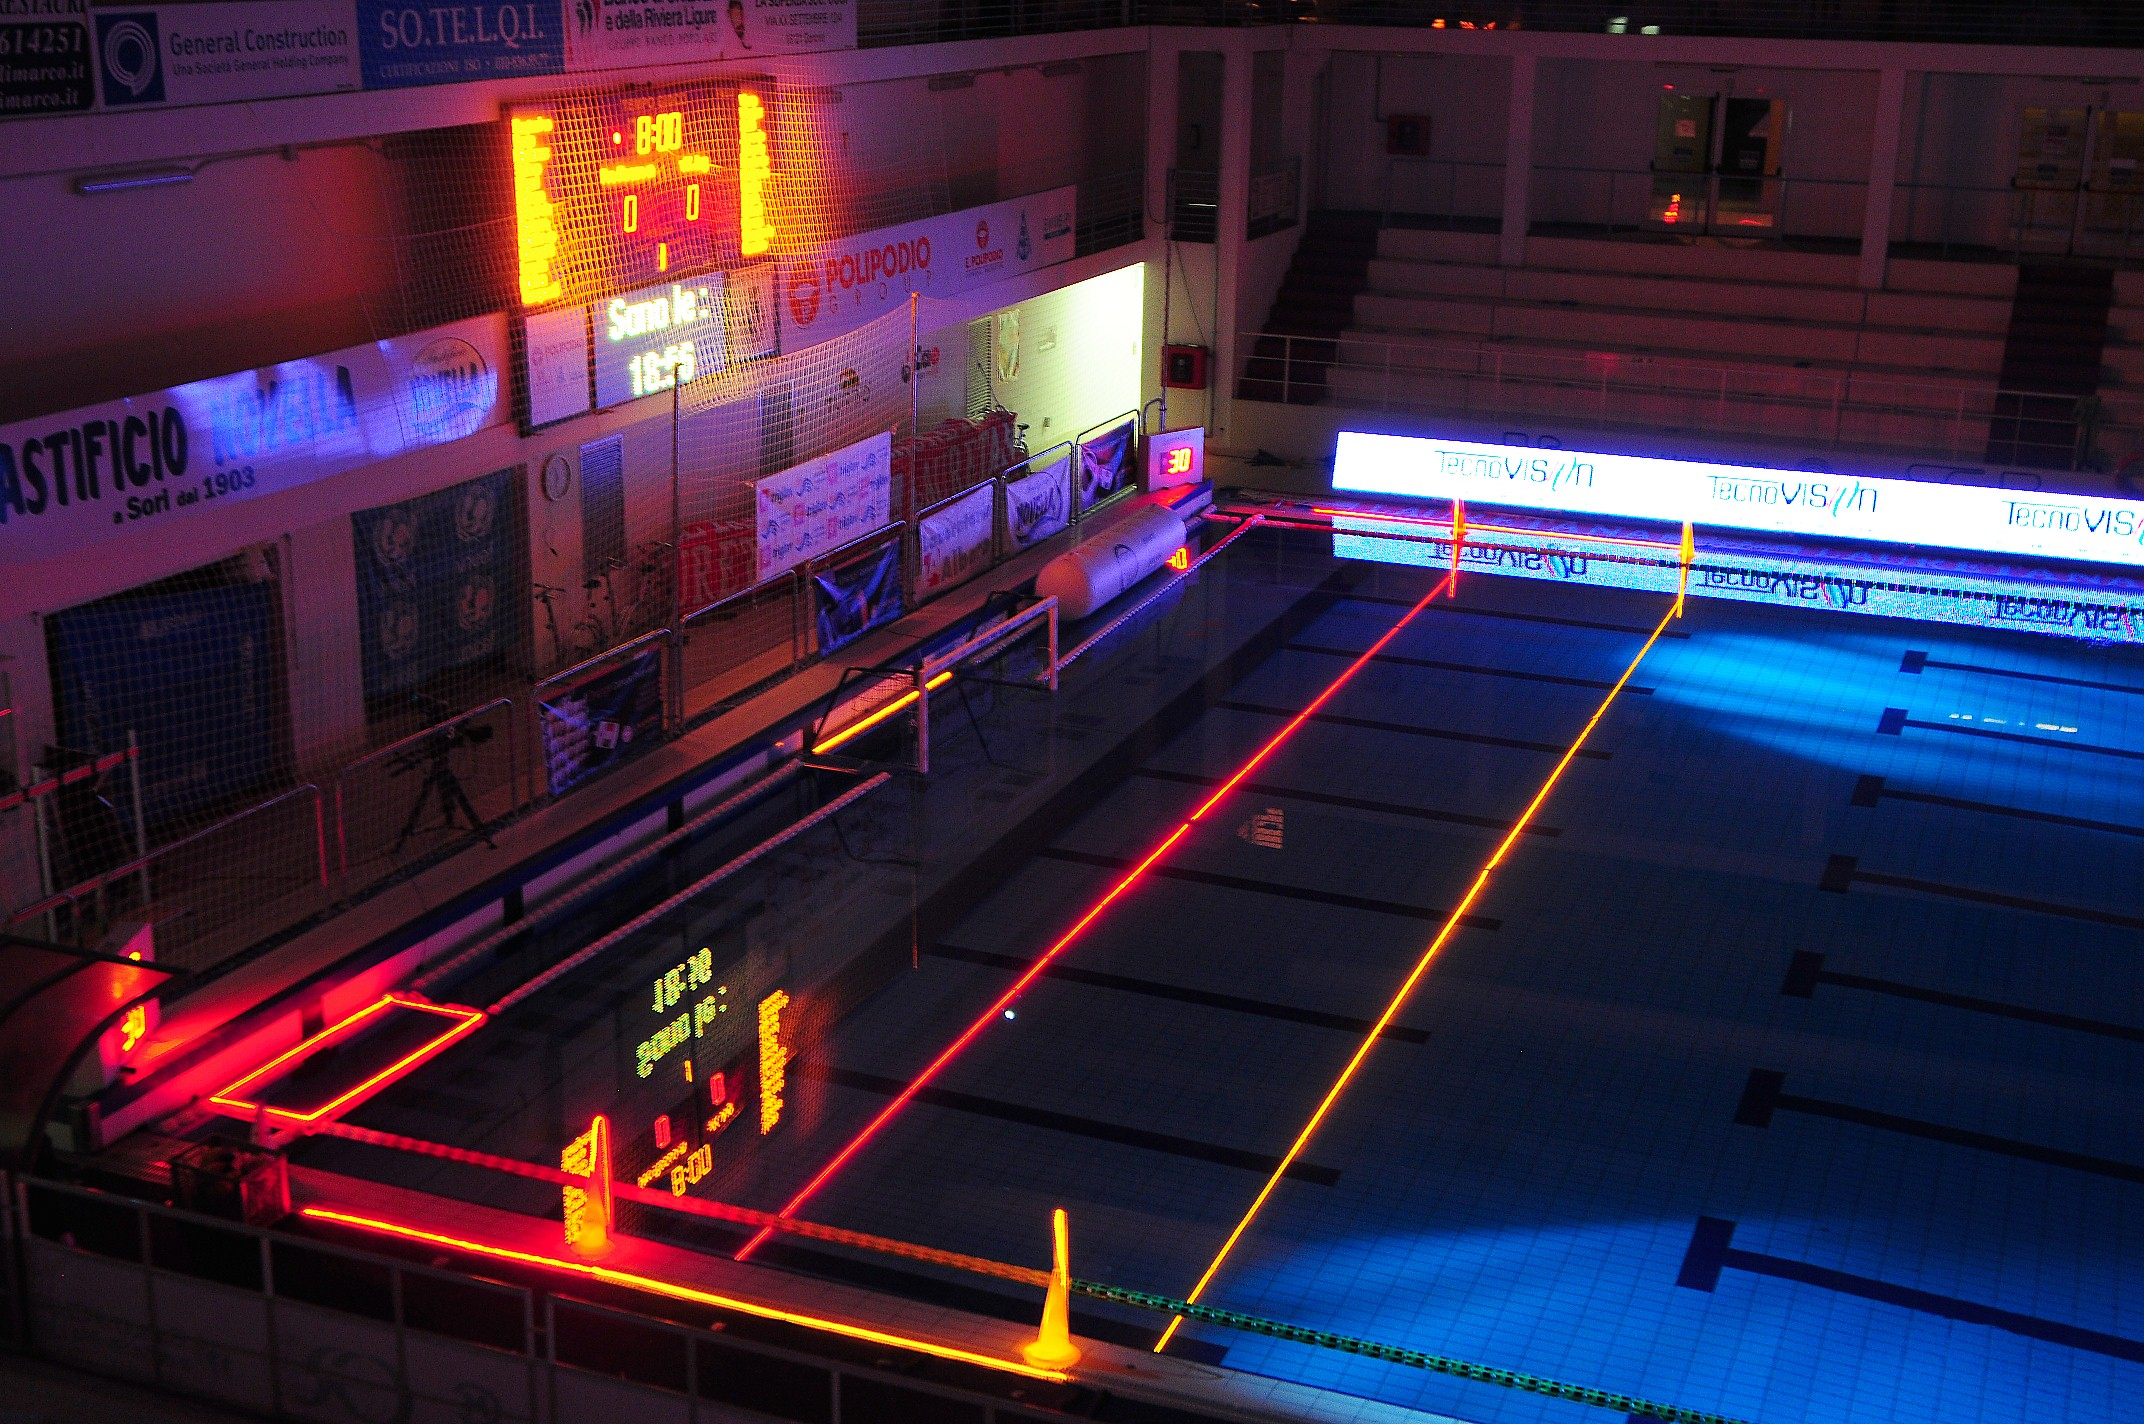 Olimpiadi 2012 Londra: wifi e led in piscina per monitorare i nuotatori [VIDEO]